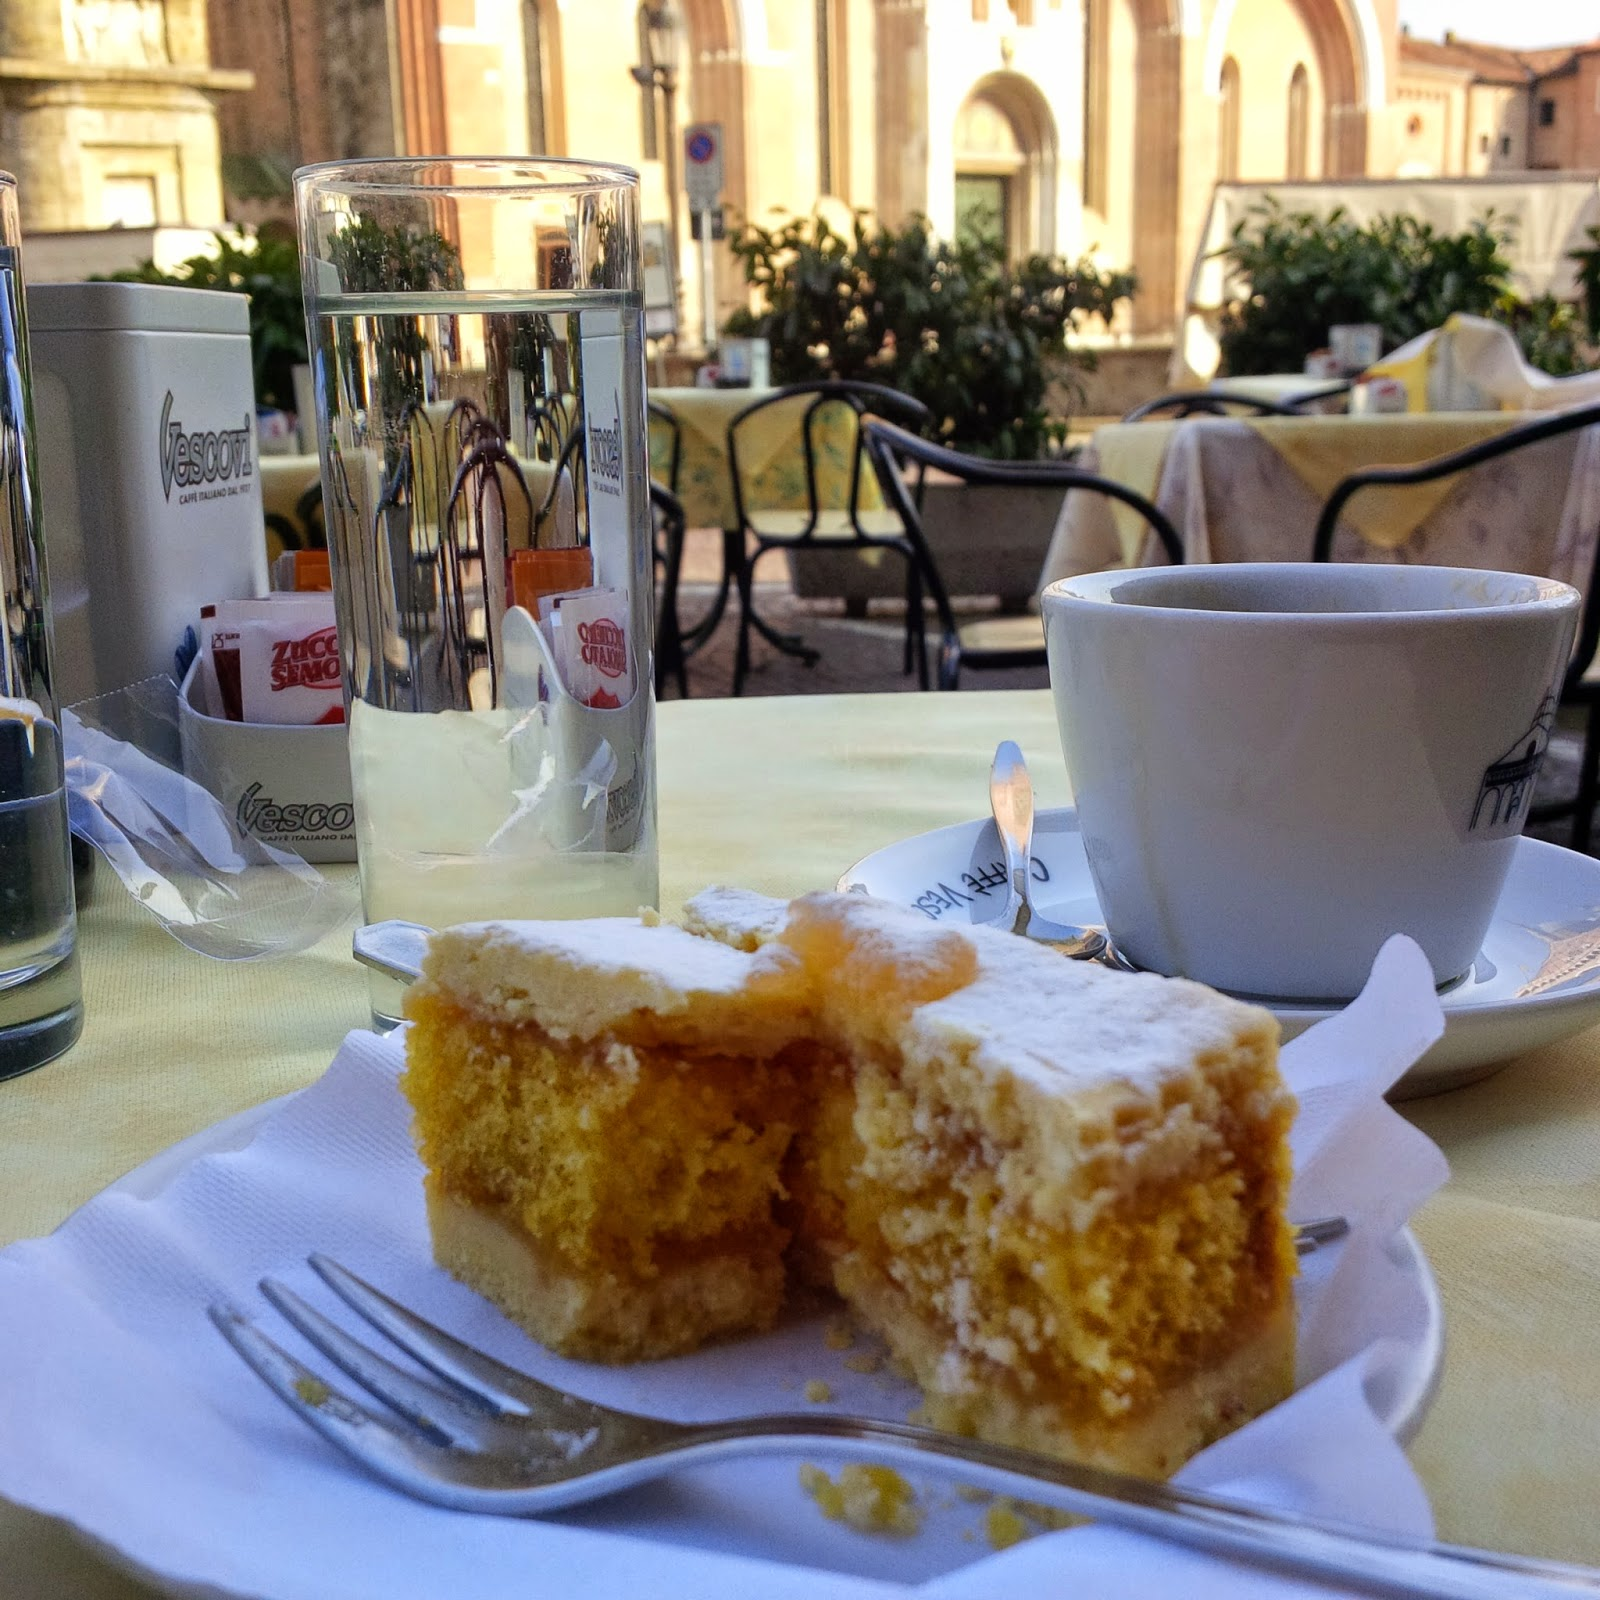 A piece of cake and a cup of real Italian coffee enjoyed opposite St Anthony's Basilica in Padua